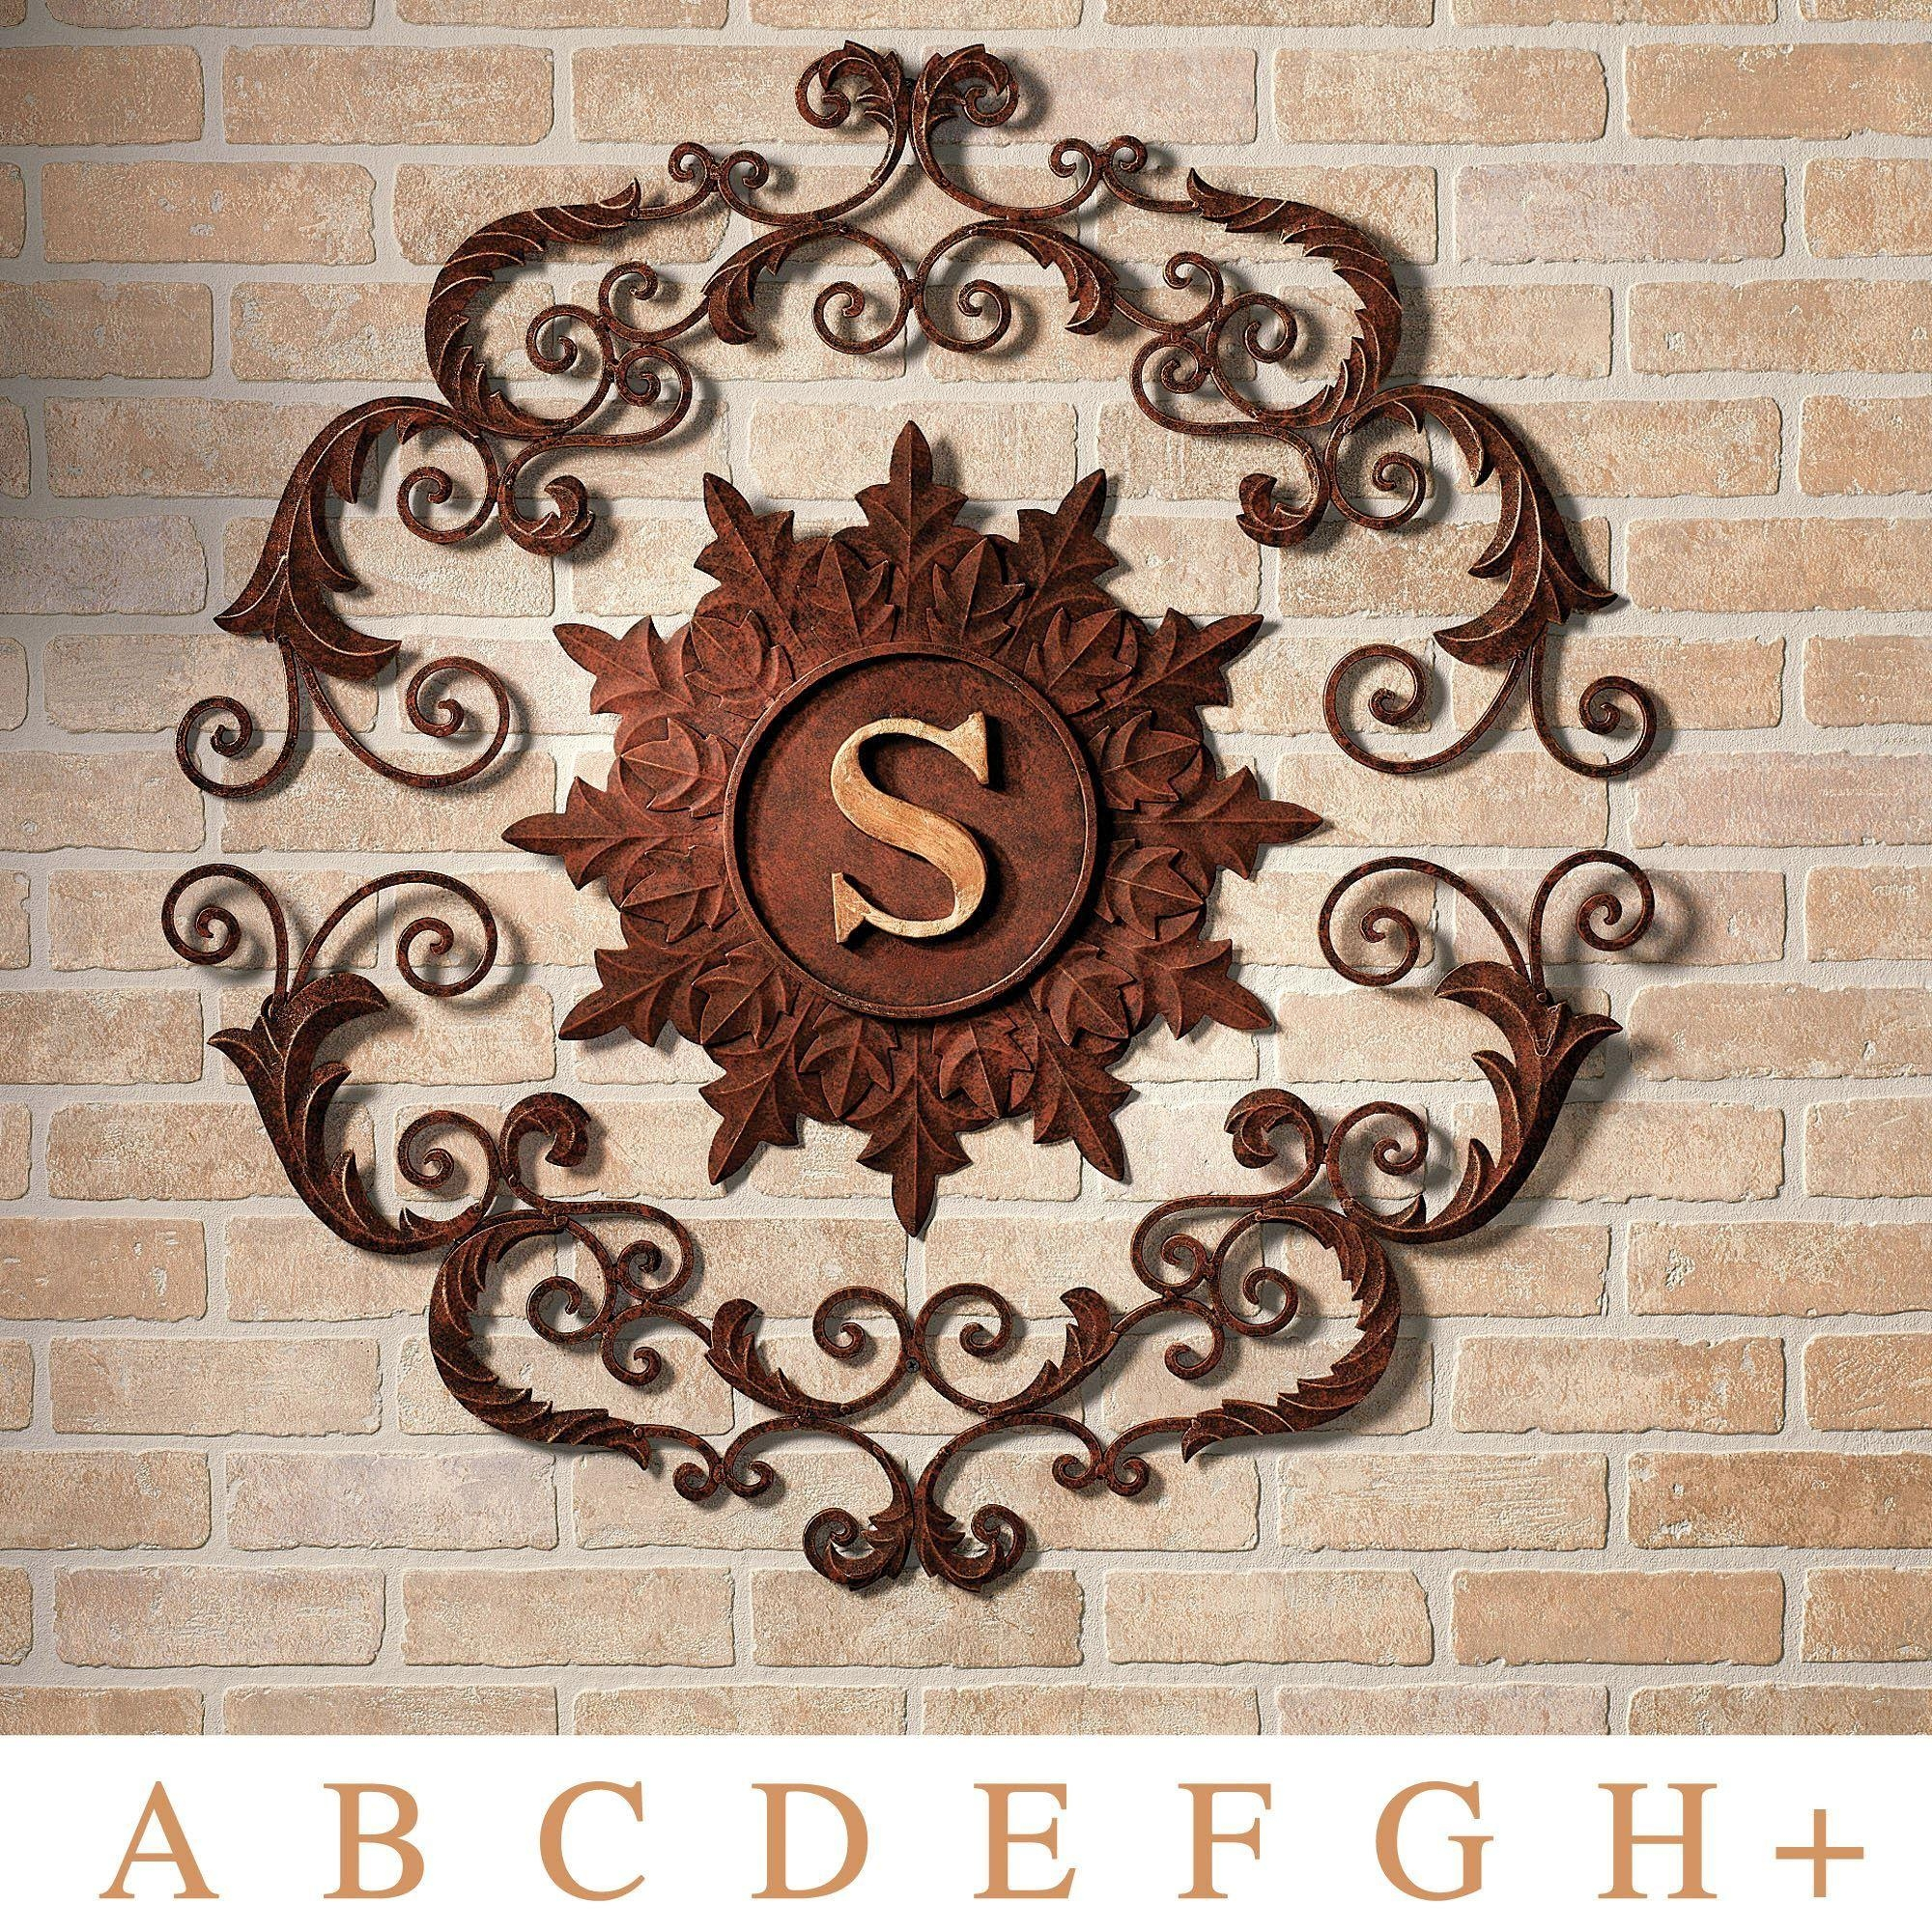 Kingston Monogram Metal Wall Grille Within Large Metal Wall Art For Outdoor (View 8 of 20)